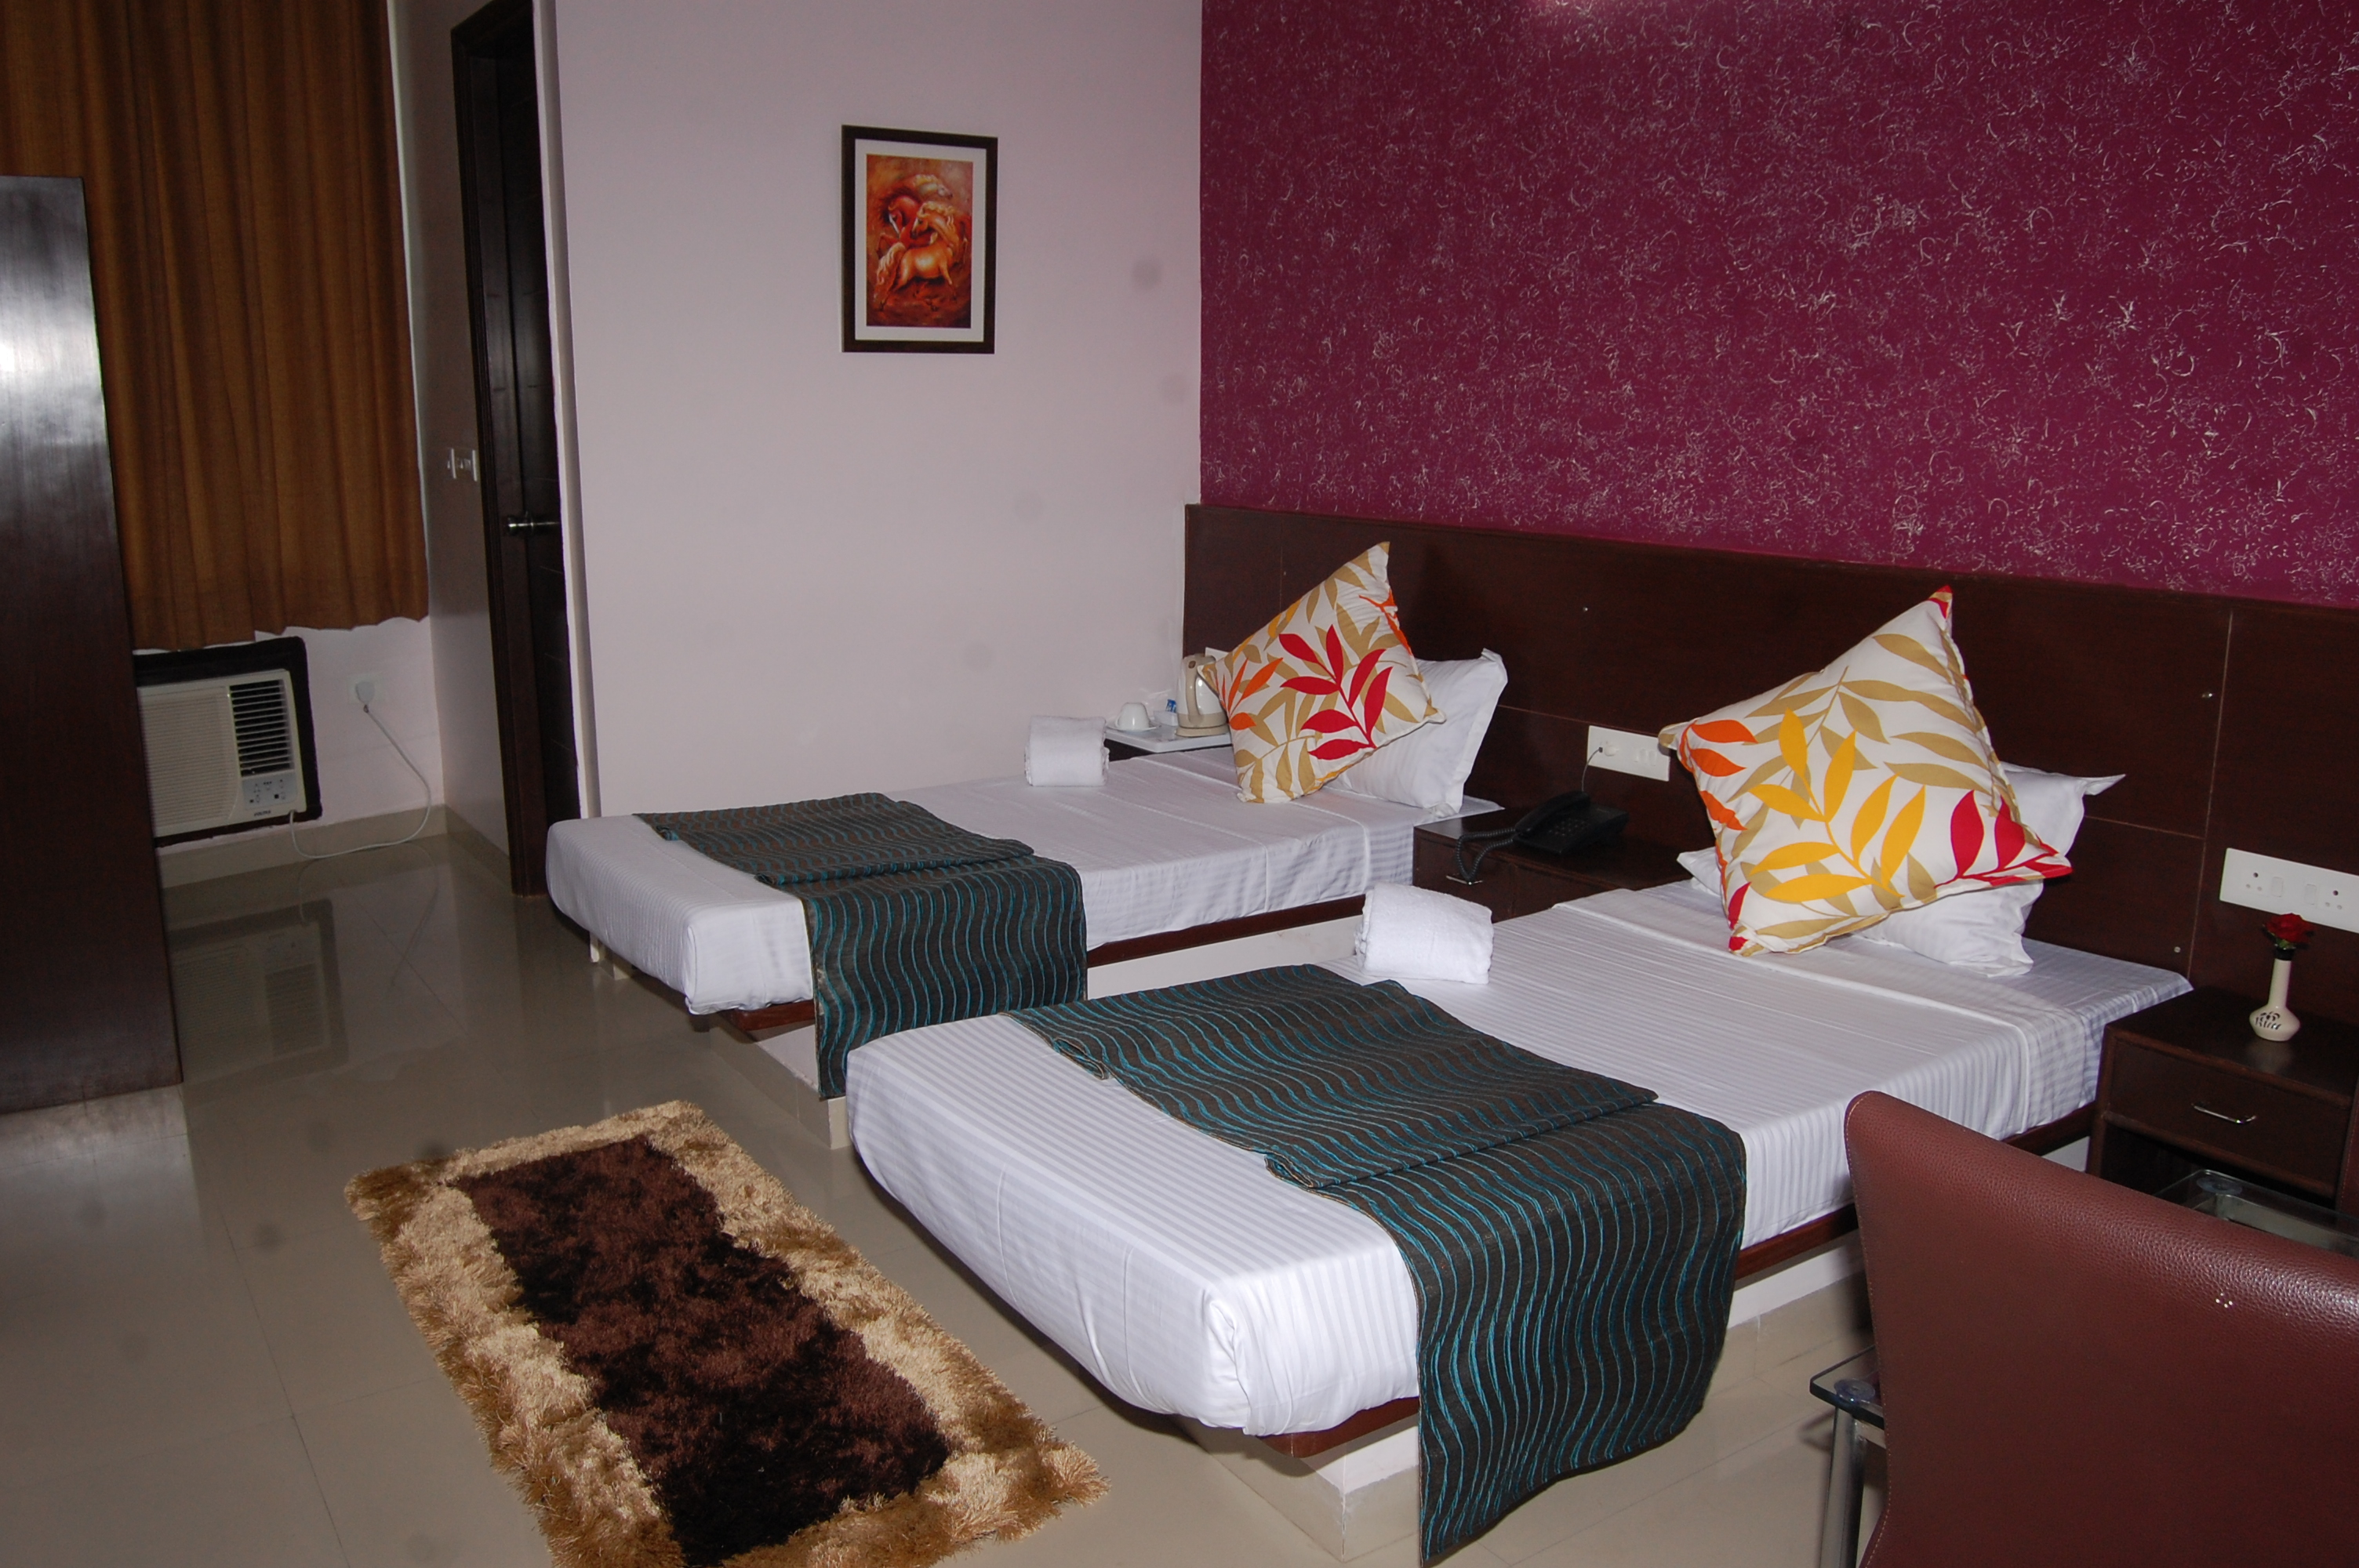 Highway King Residency Hotel Gurgaon